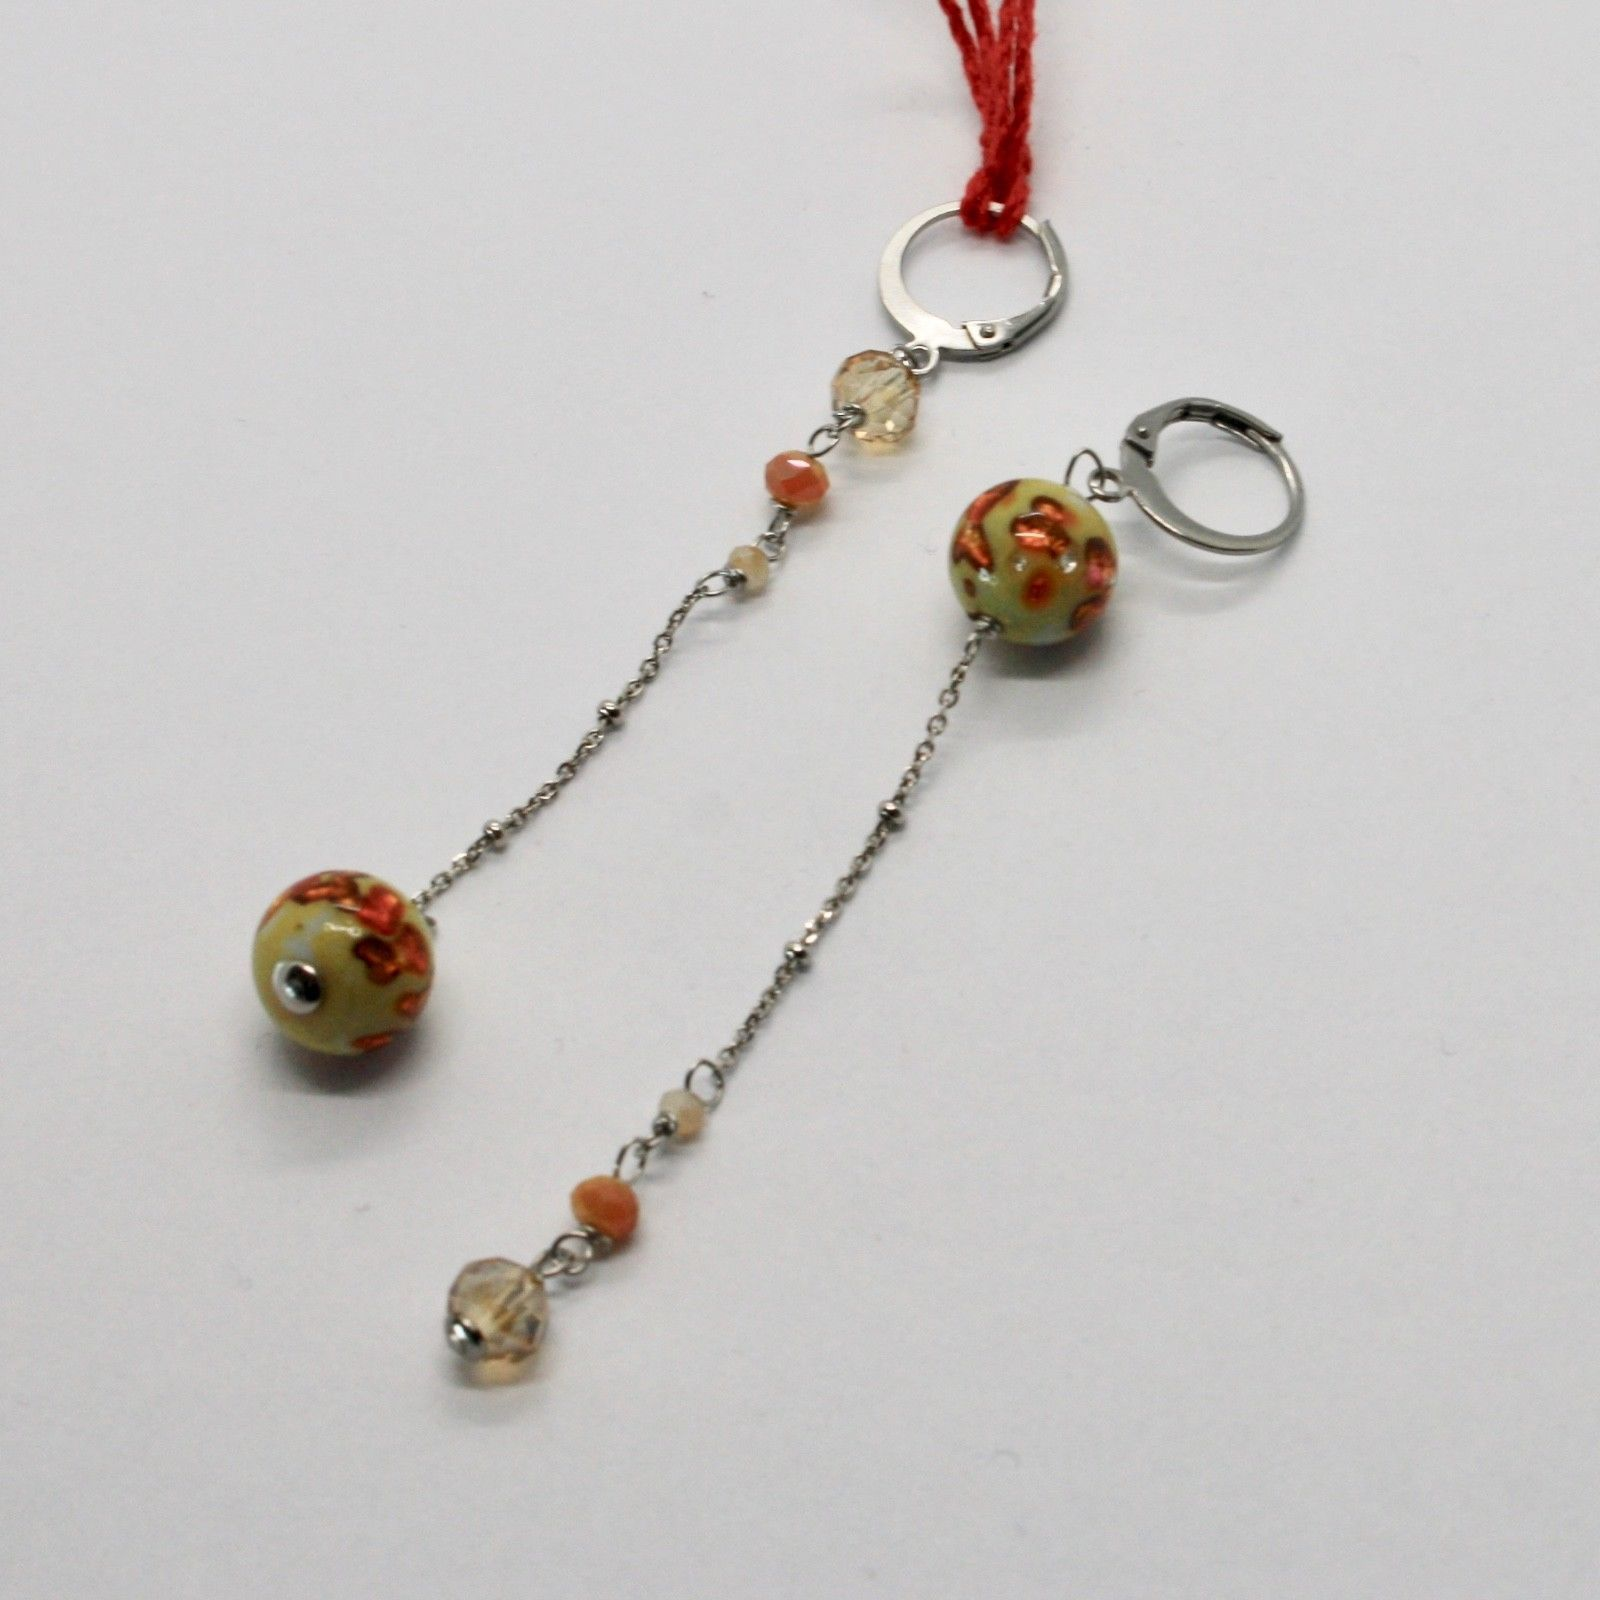 EARRINGS ANTICA MURRINA VENEZIA WITH MURANO GLASS ORANGE BEIGE OR568A10